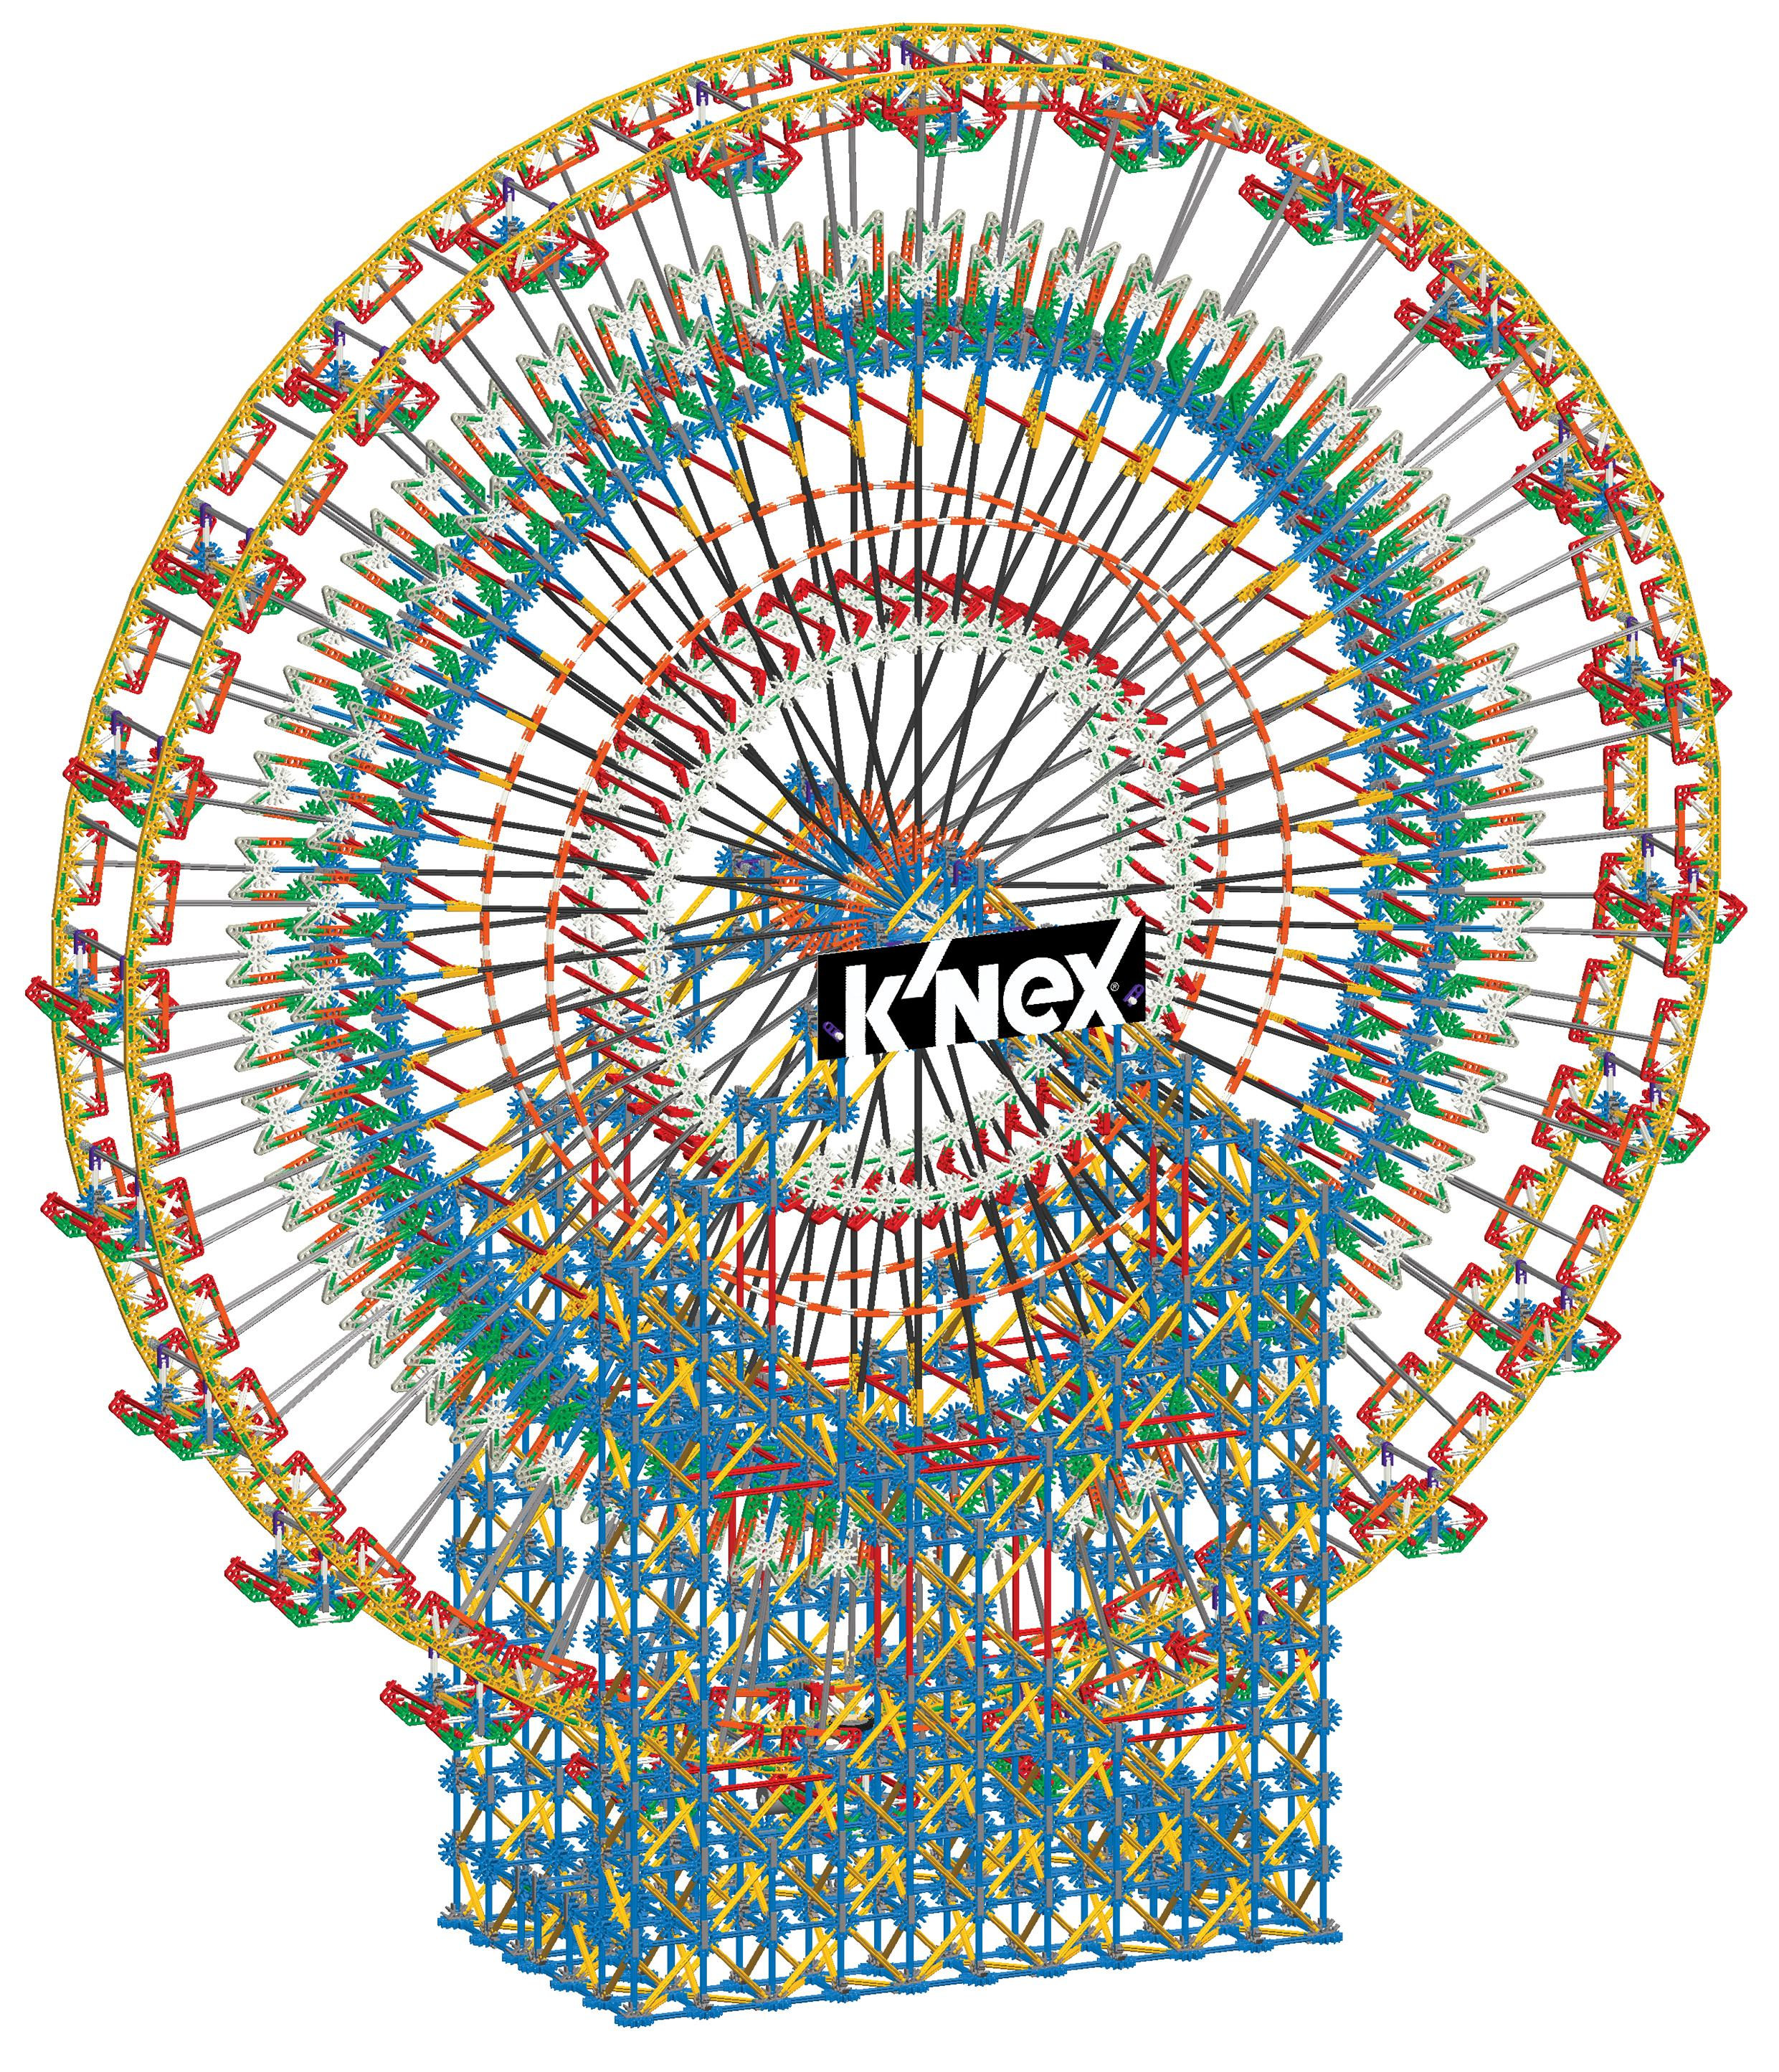 roda-gigante-knex-ferris-wheel-6-foot-building-set-03